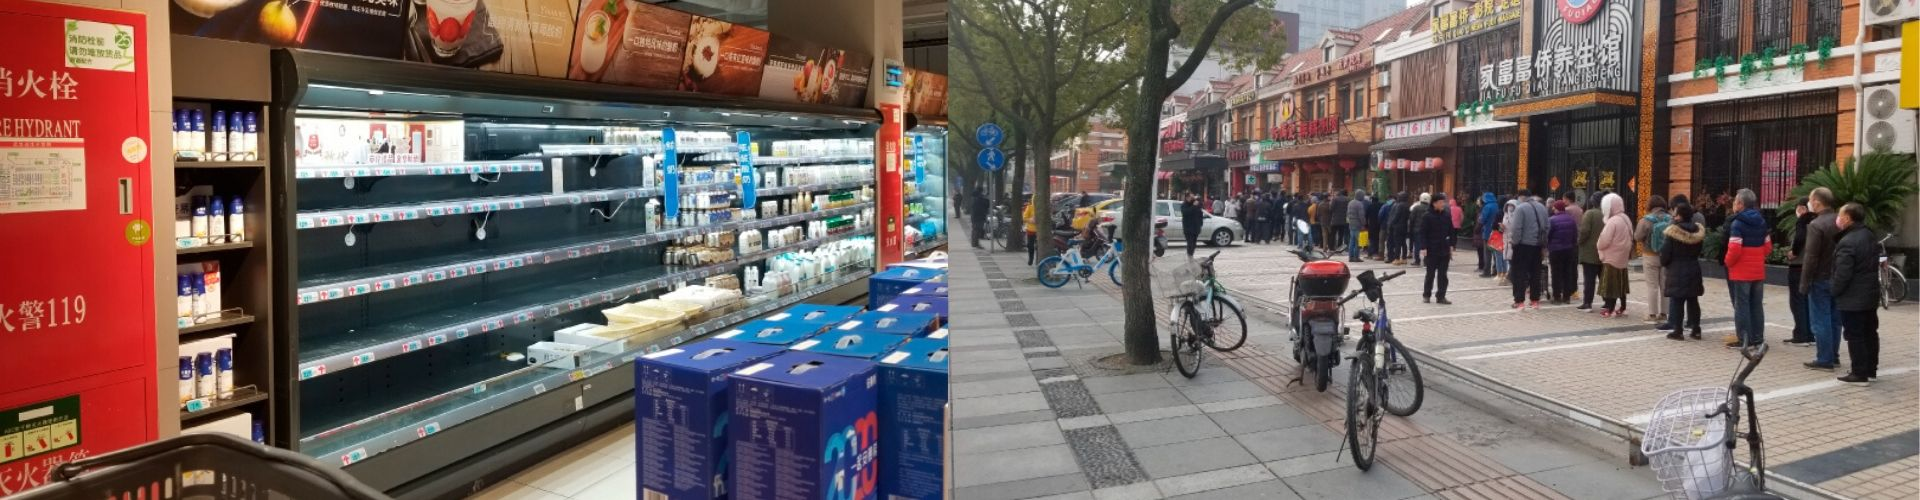 Left: In Shanghai, few stores are open. The shelves are not entirely empty but milk, eggs vegetables and fruit are in high demand and it is these shelves that are often bare. Right: People lined up outside of pharmacies to get face masks as soon as they open.